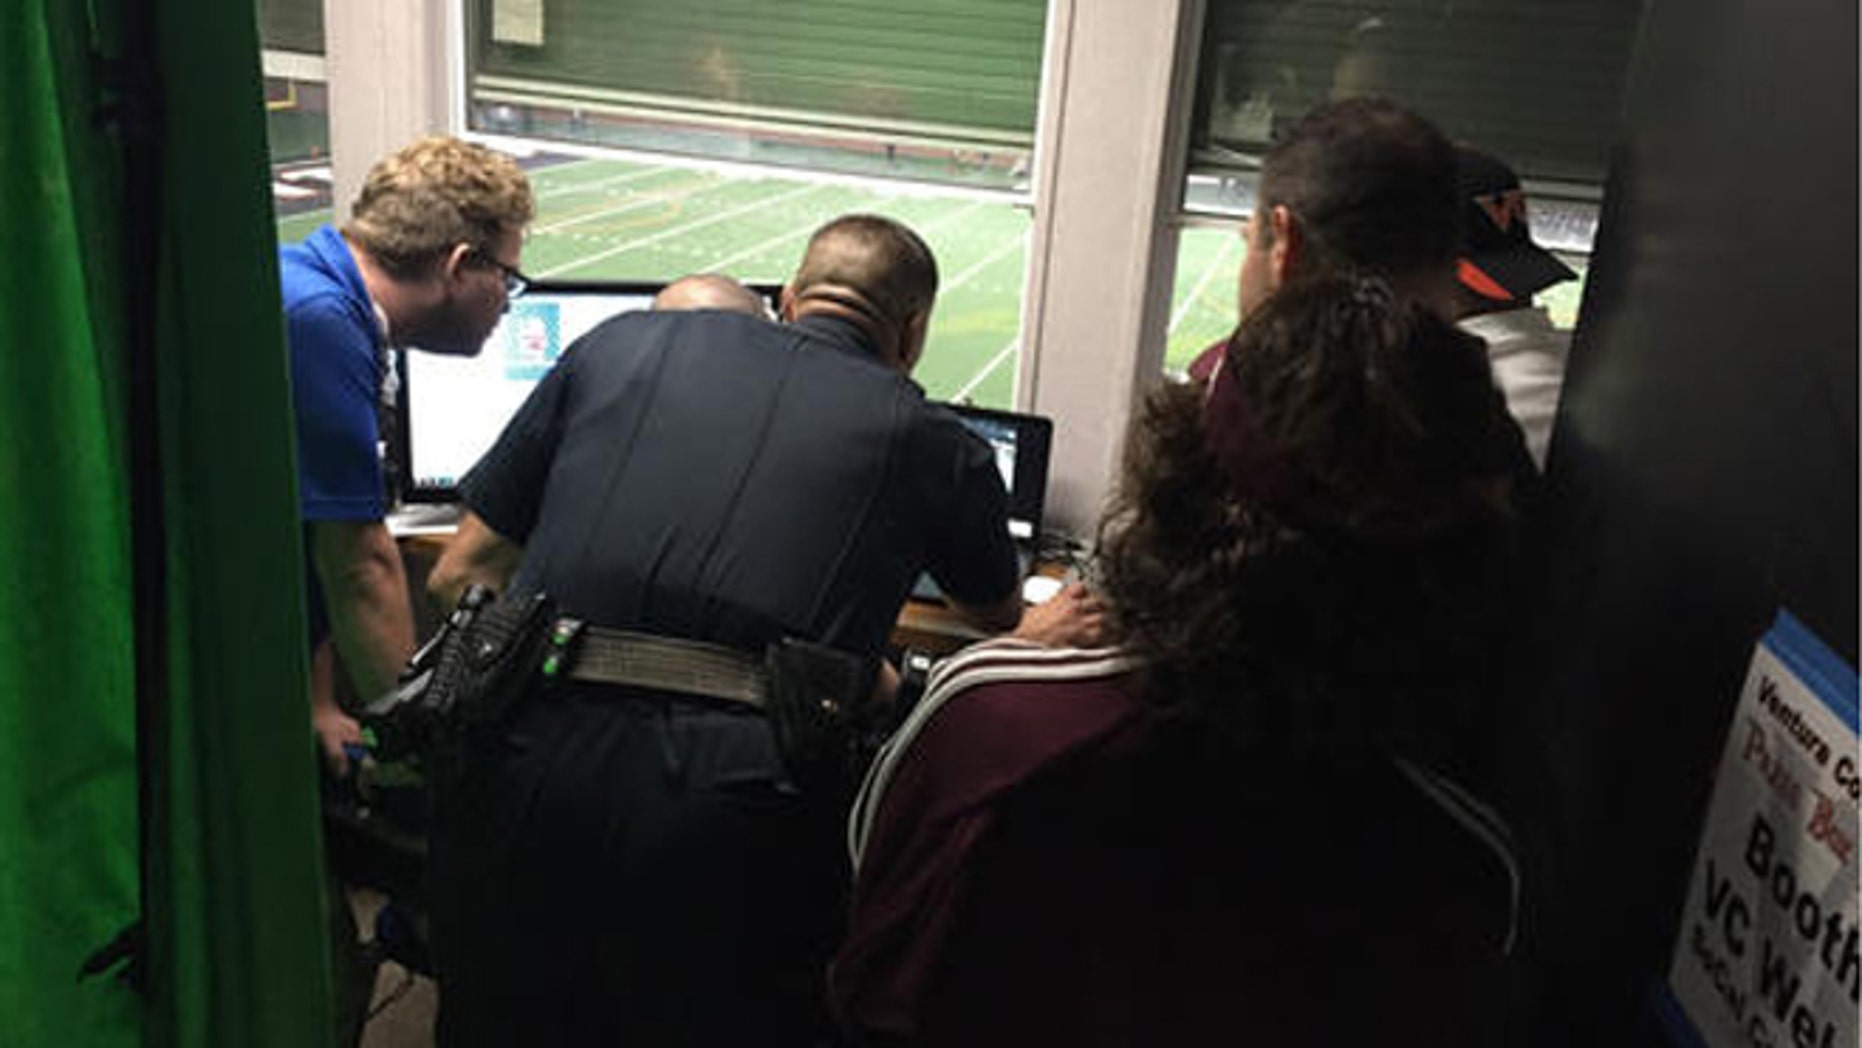 Ventura College police officer reviews game footage to determine whether a Mt. St. Antonio College football player punched a referee during a game Saturday. (Joe Curley/The Ventura County Star via AP)